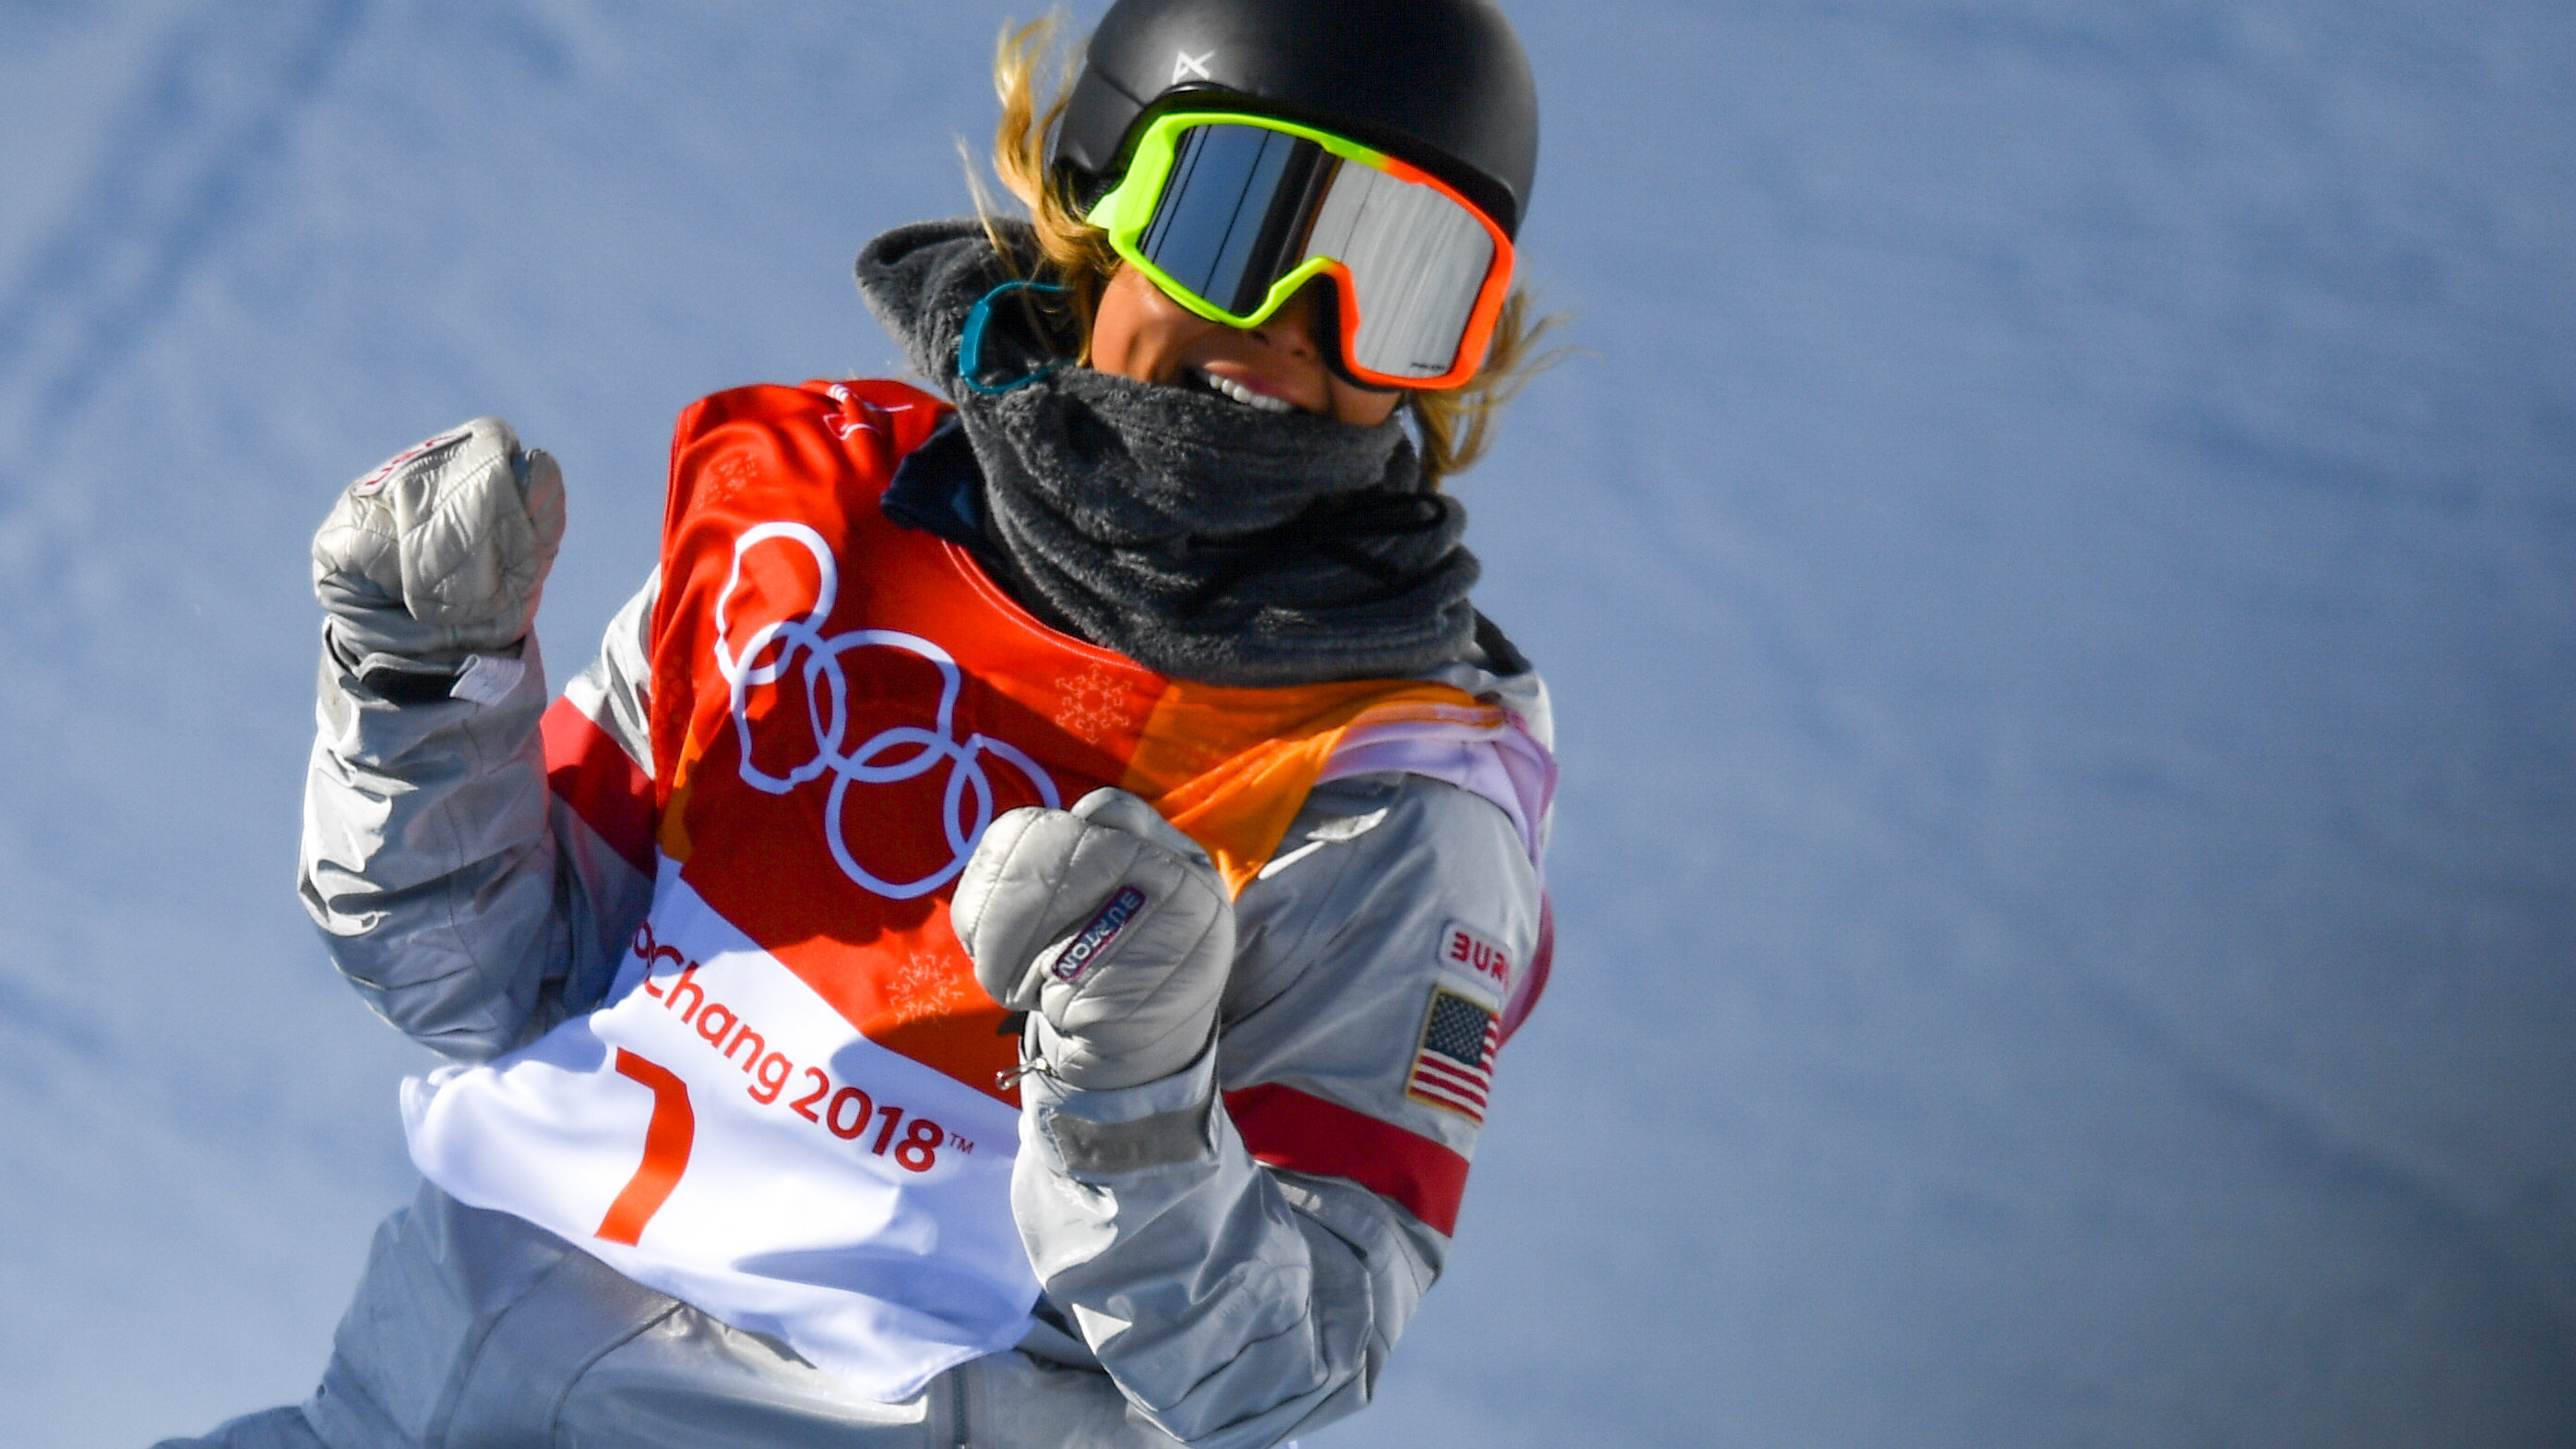 A 17-Year-Old Snowboarder Chloe Kim To Dominate Winter Olympics 2018